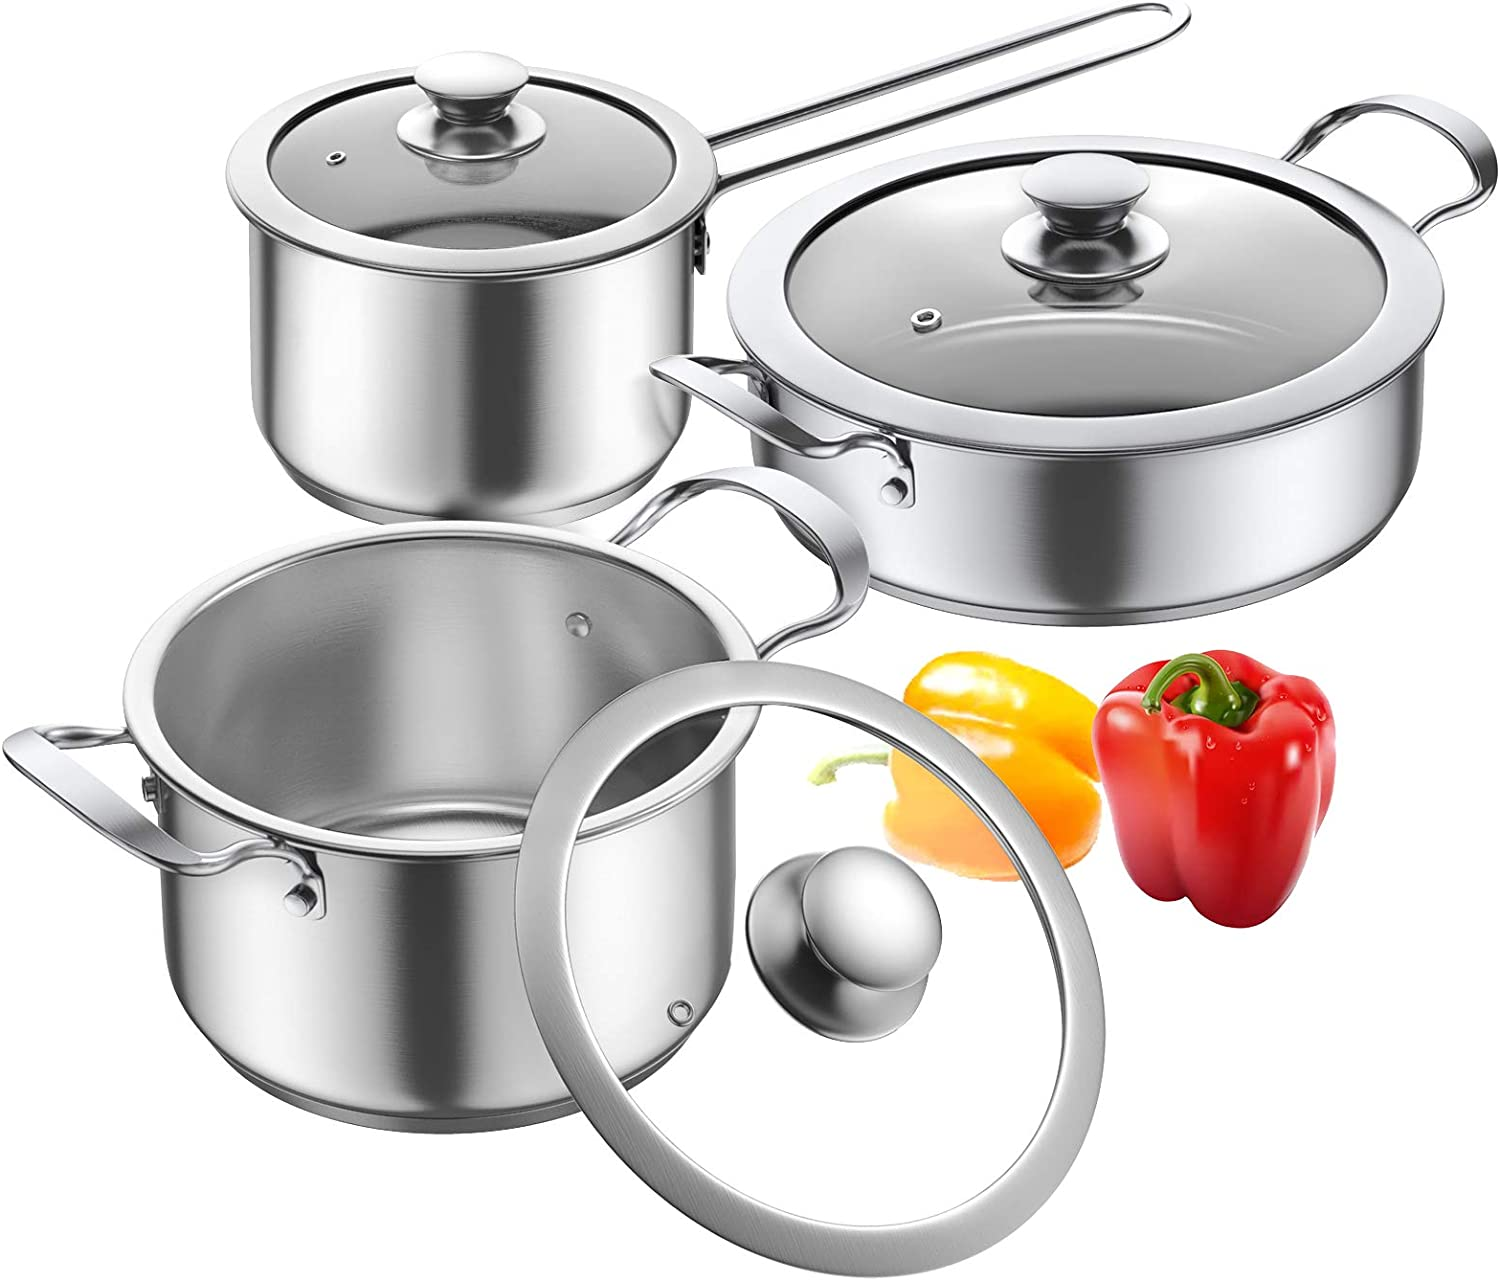 Cookware Set, Elegant Life 6-Piece Pots and Pans Set with Glass Lids, Premium 18/10 Stainless Steel Saucepan, Even Heating, Stovetop & Dishwasher Safe(silver)